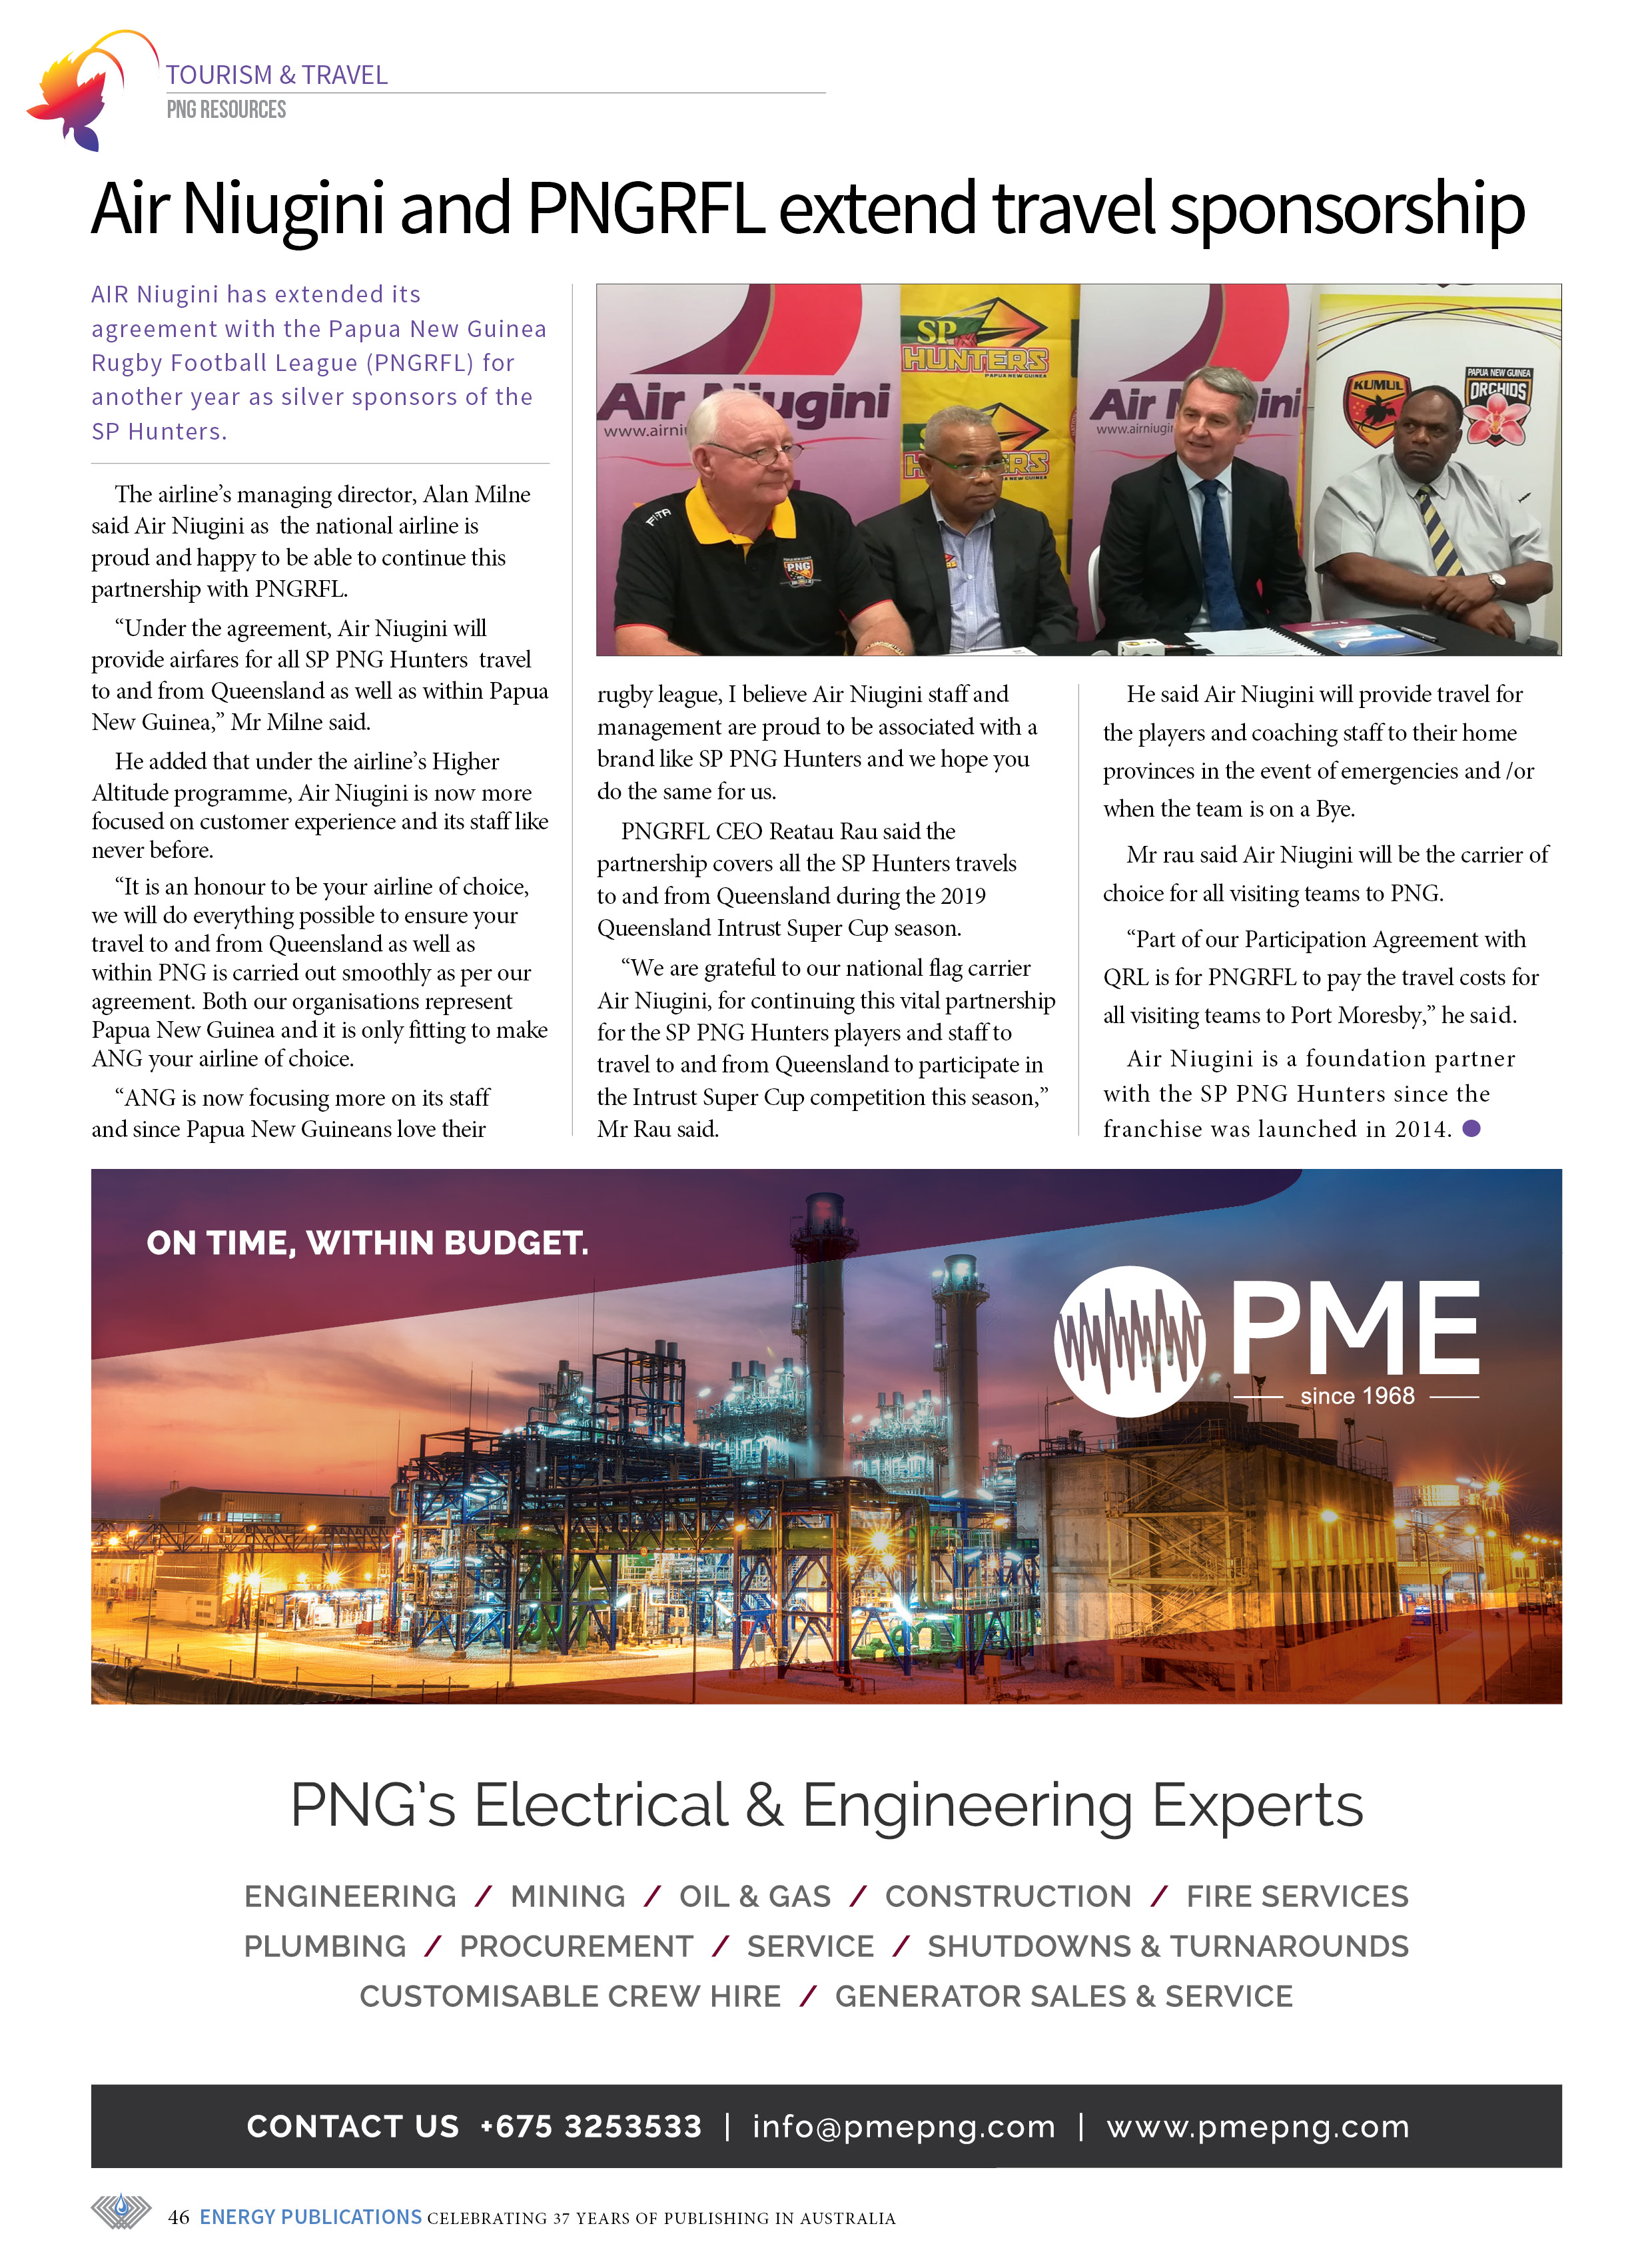 PNG Resources Q1 2019 – Page 48